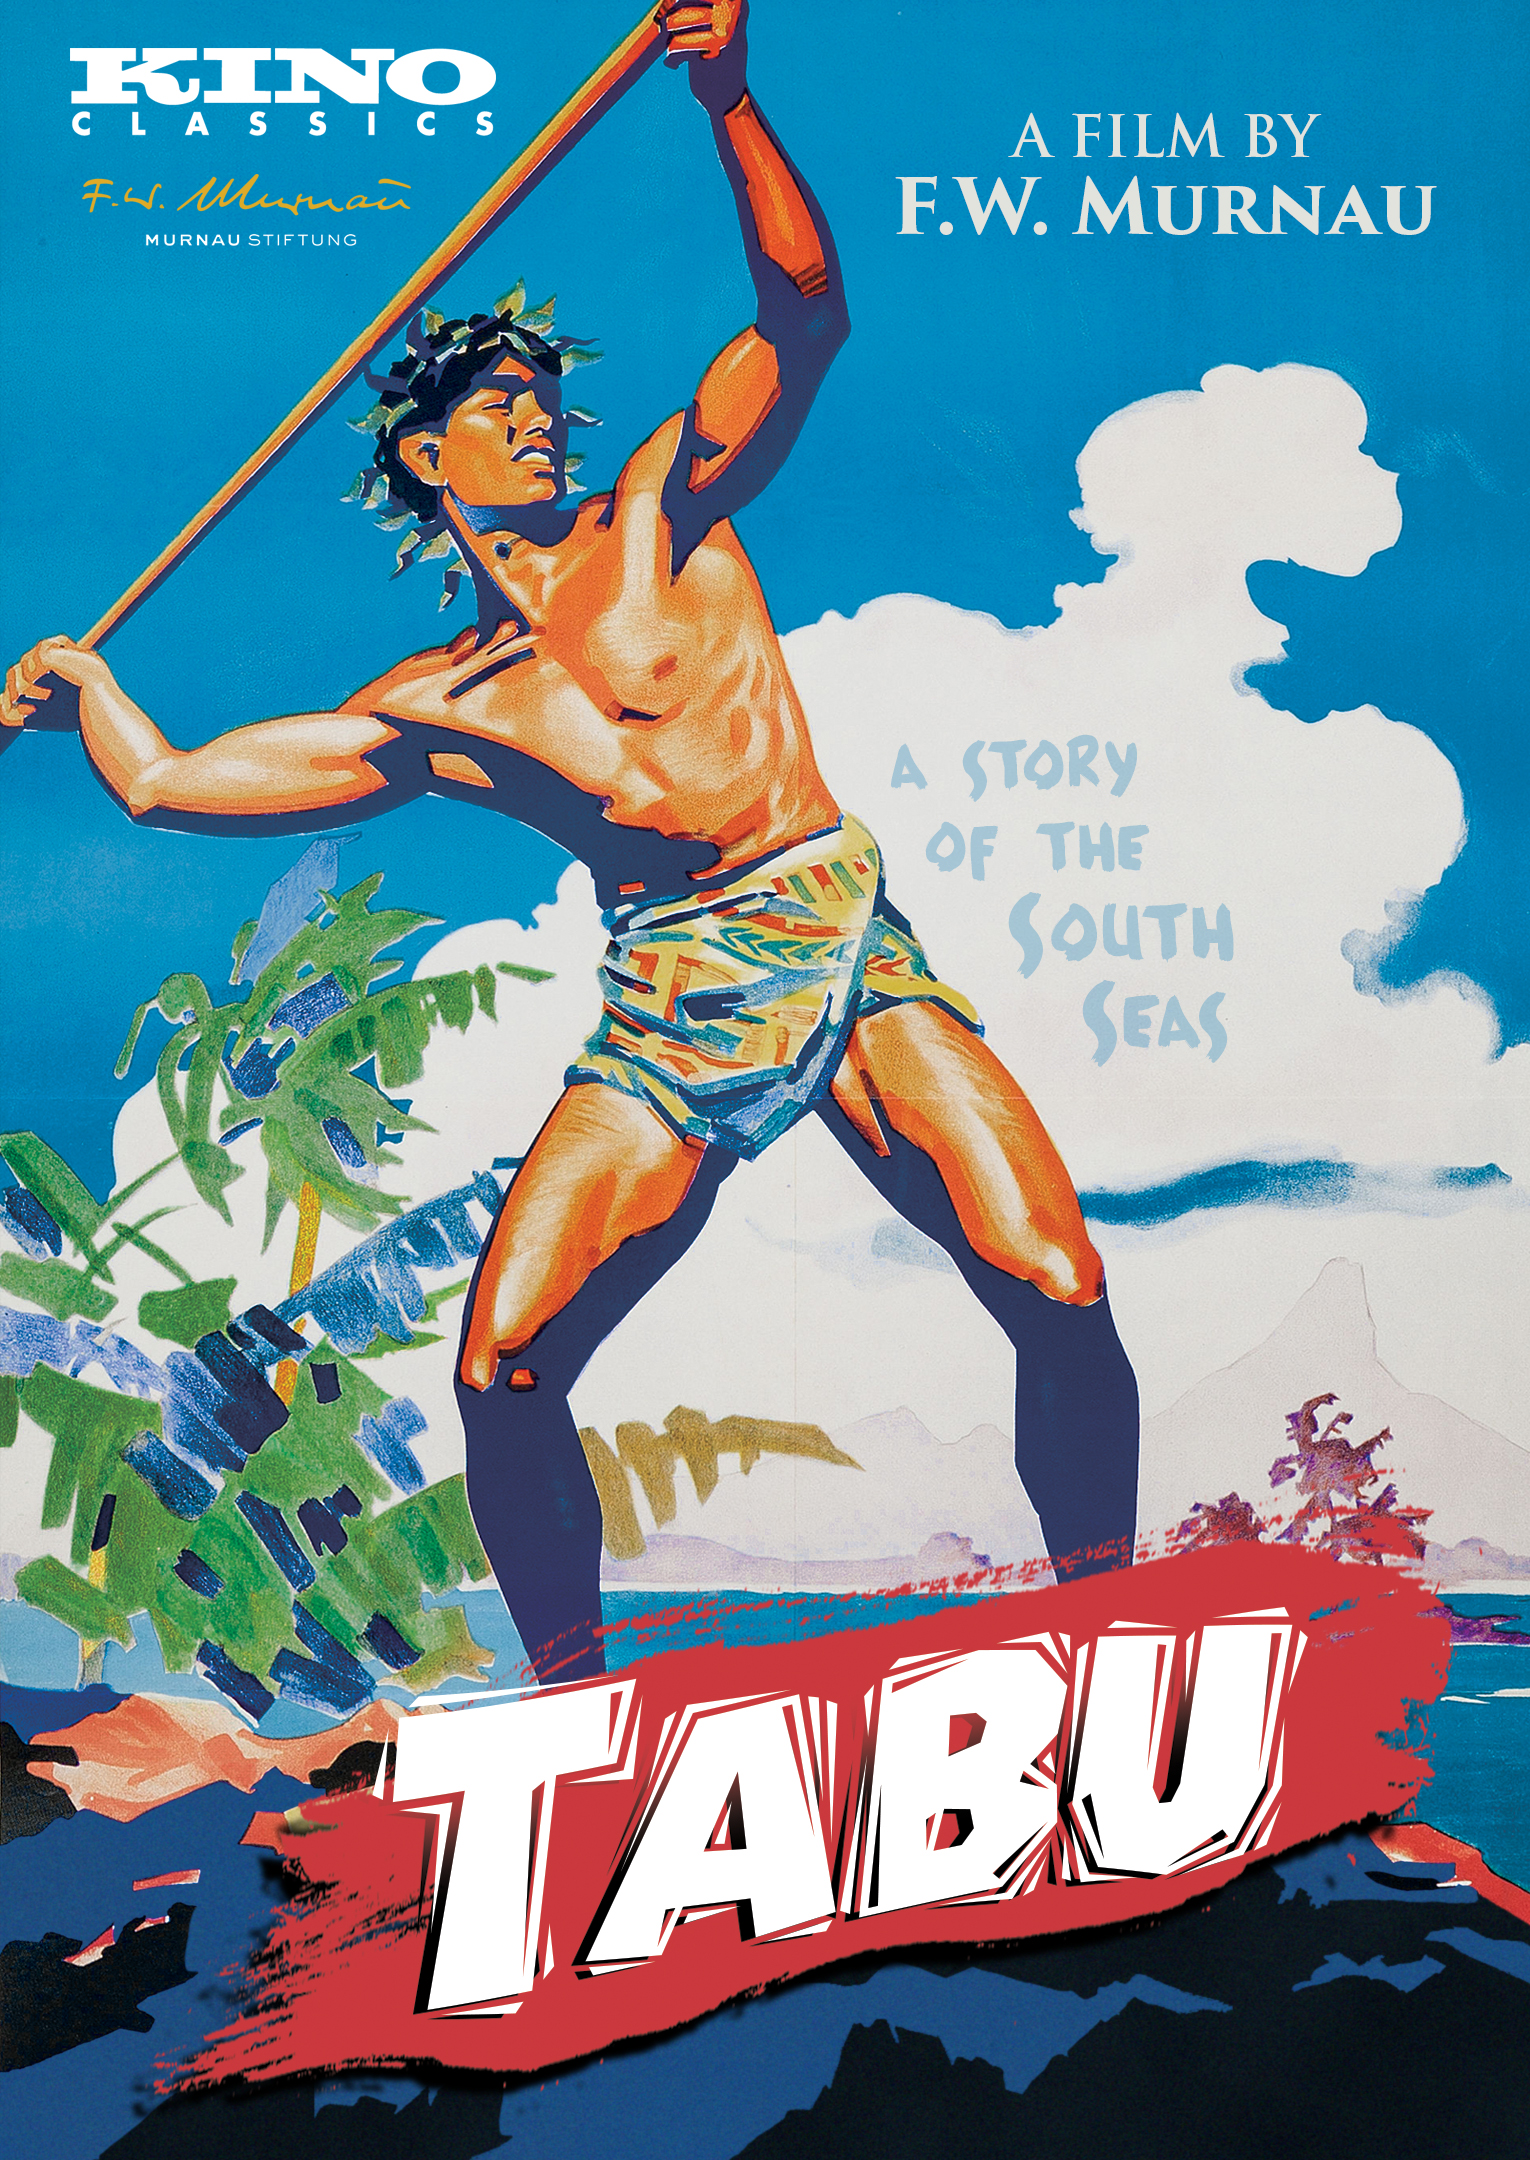 The film poster showing a drawing of Matahi (Matahi) as he spear-fishes.